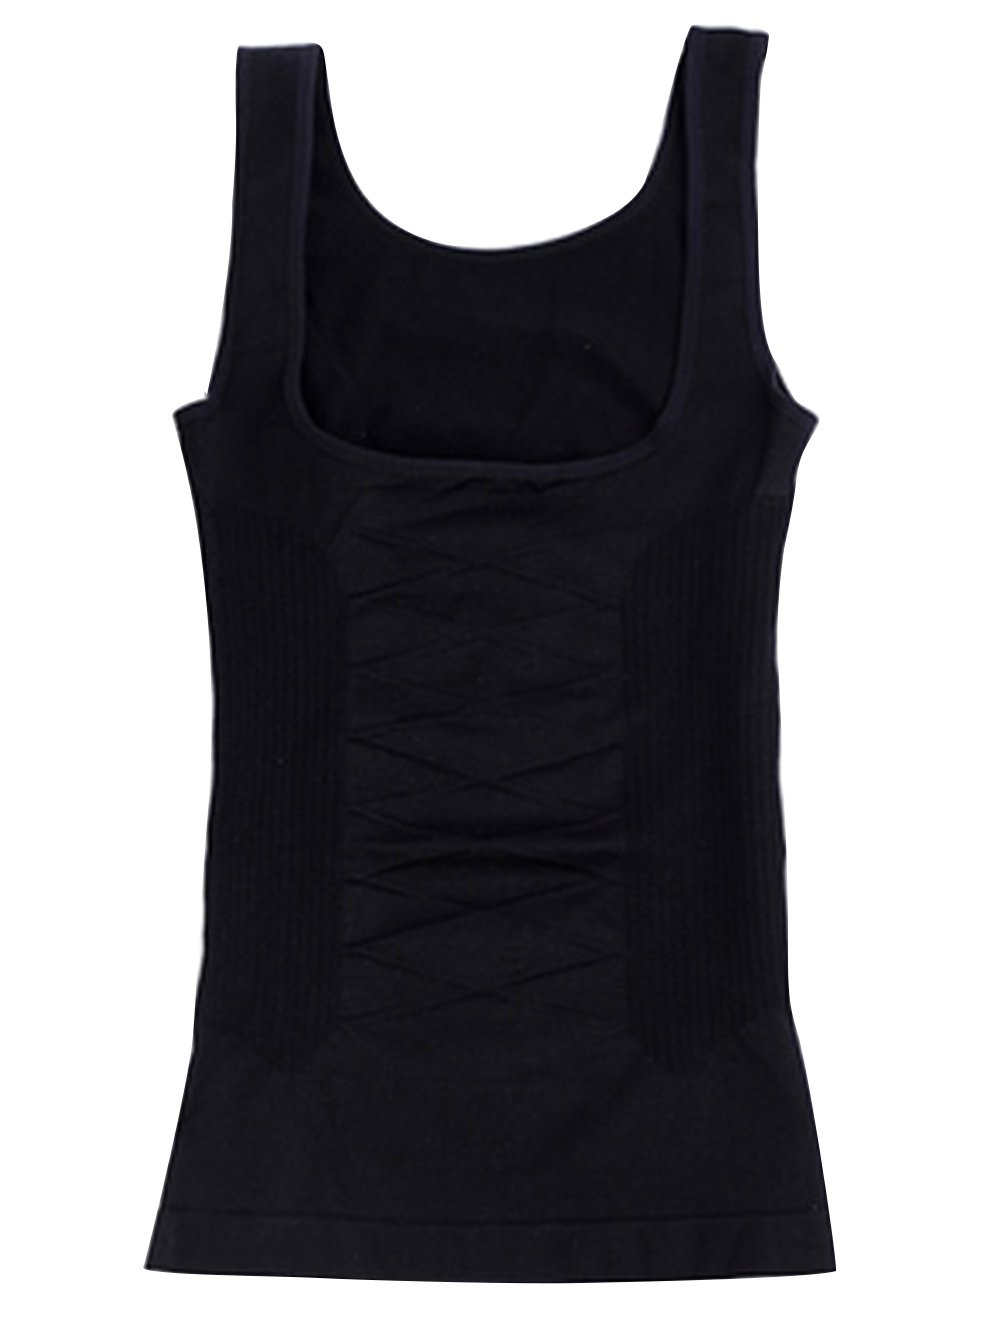 Feoya women's Shaping Control Open-bust Vest with Flat Belly Effect Camisole